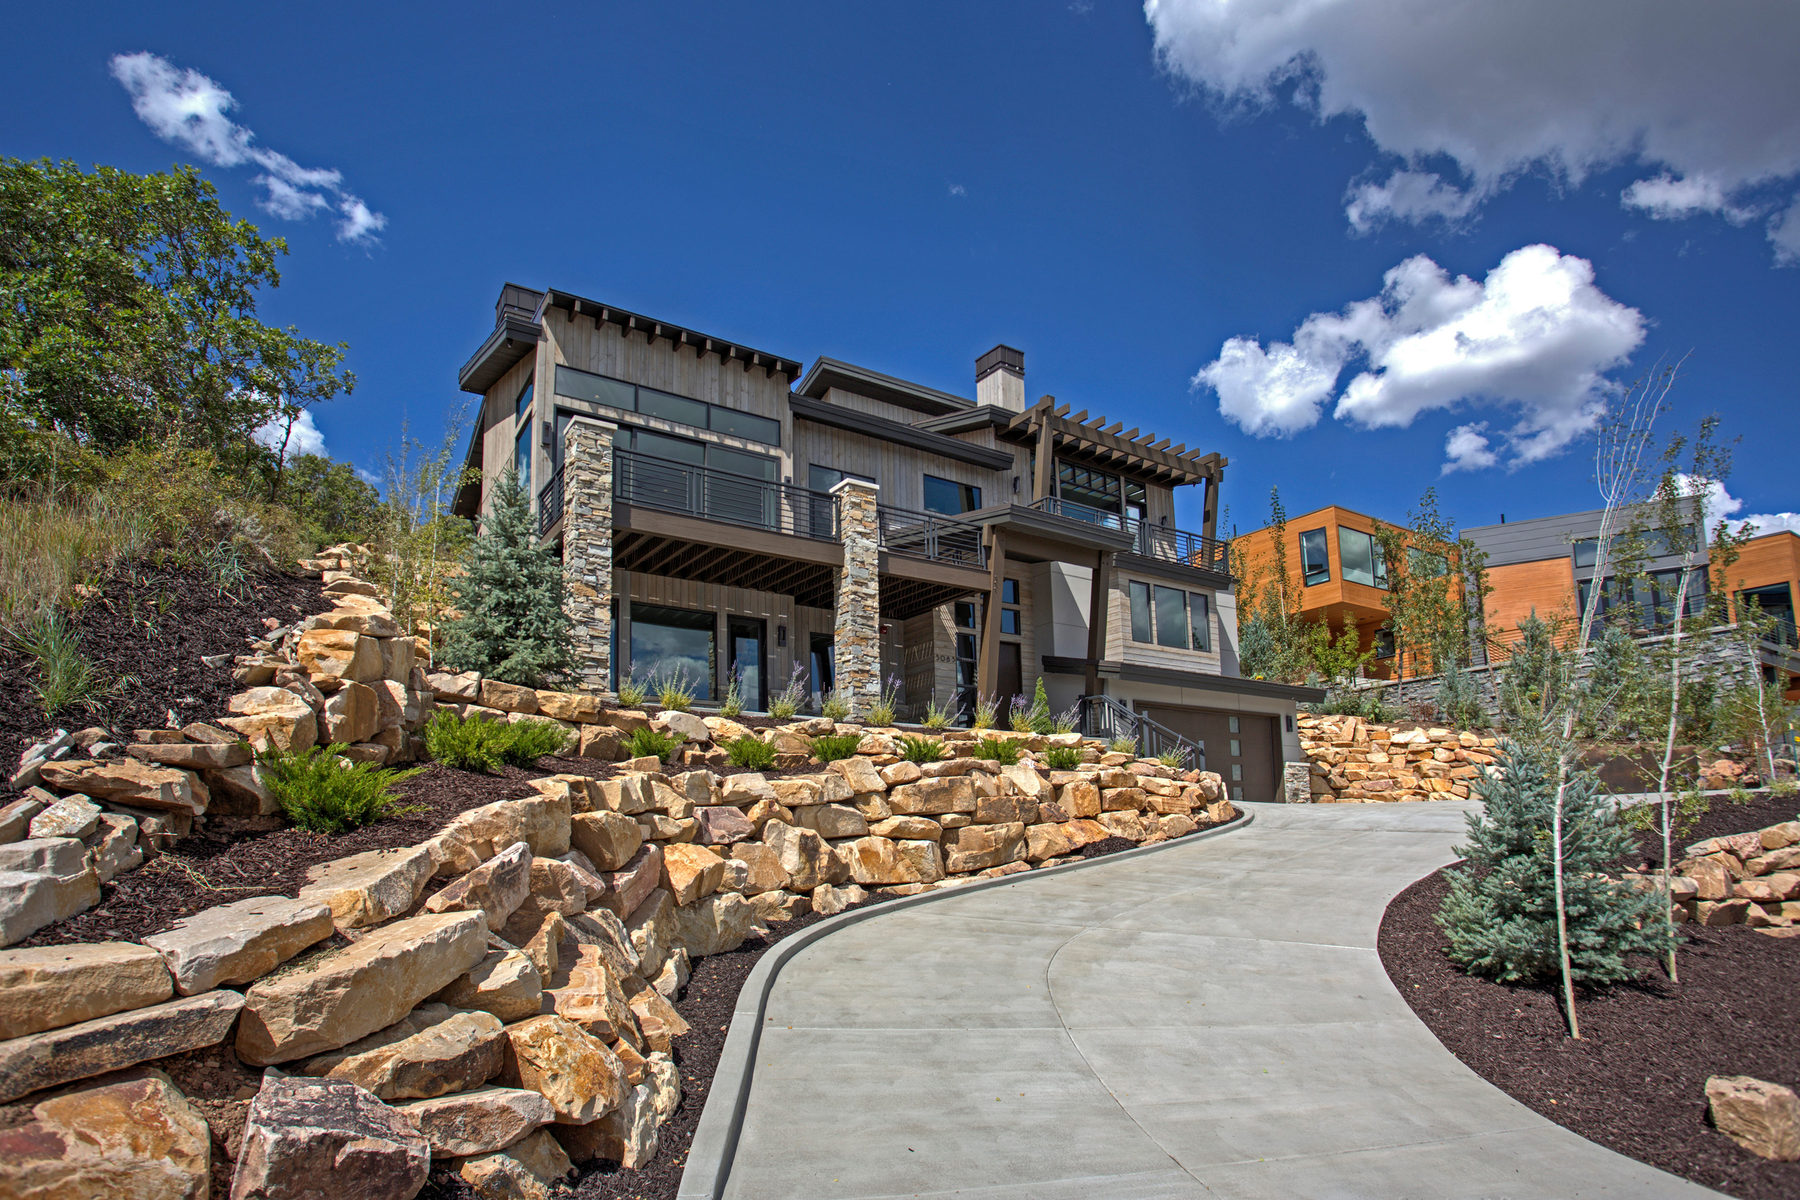 Single Family Home for Sale at New Mountain Contemporary Home 3085 Mountain Ridge Ct Park City, Utah 84060 United States